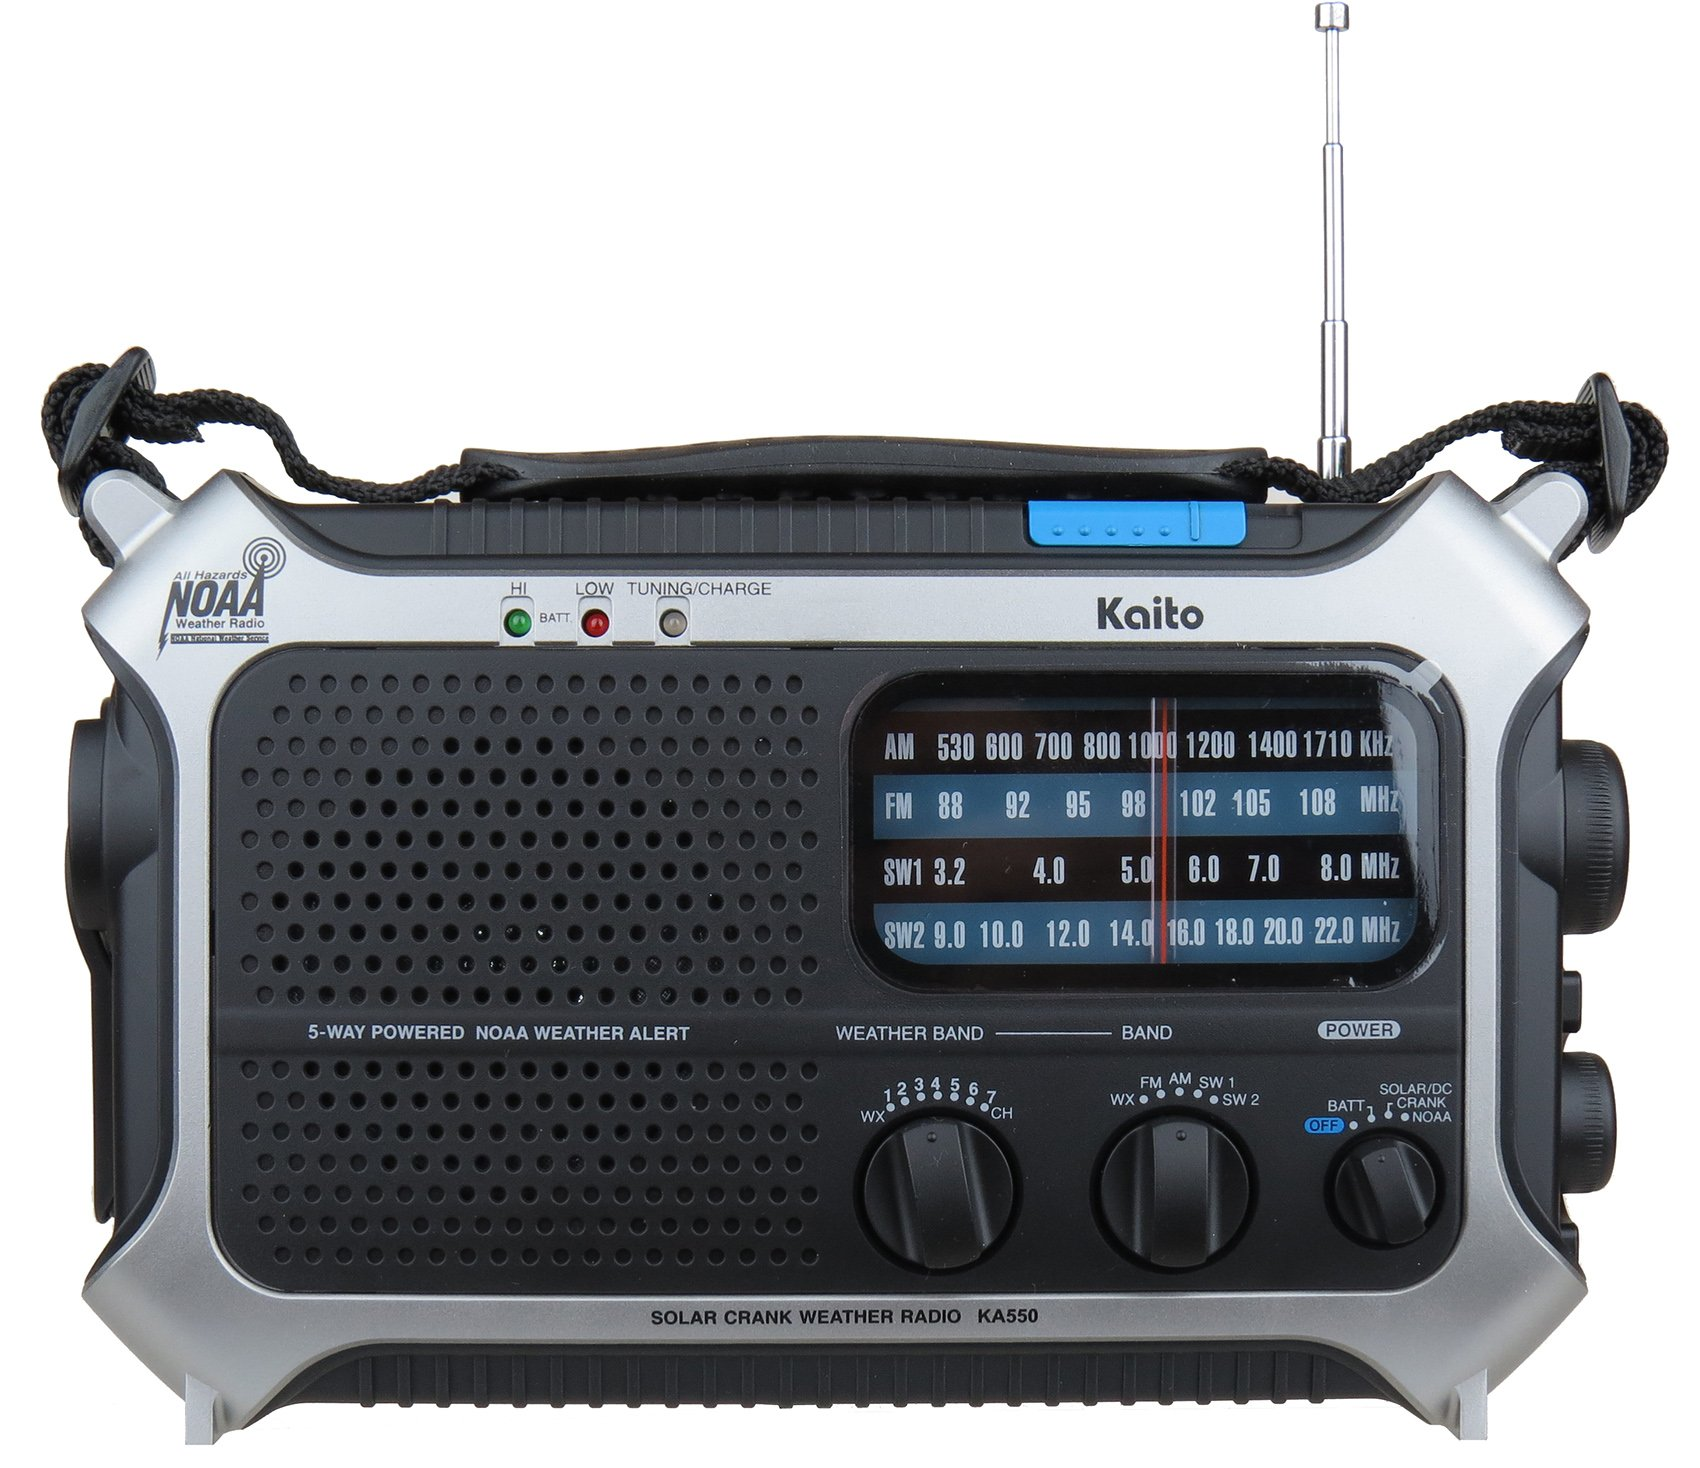 Kaito KA550 5-Way Powered AM/FM Shortwave NOAA Weather Emergency Radio with PEAS (Public Emergency Alert System) (Silver) by Kaito